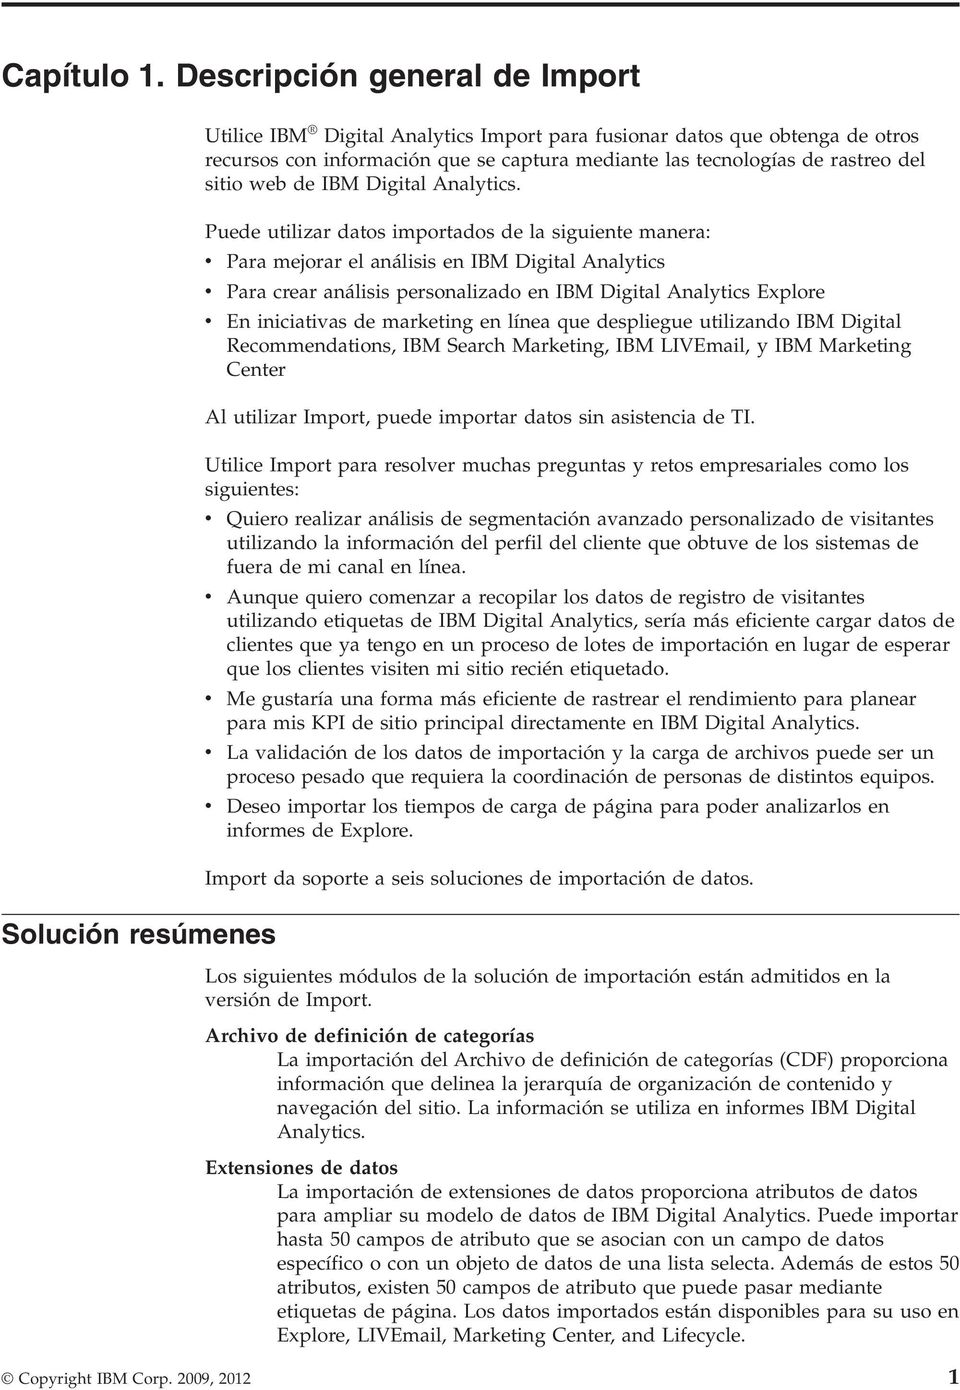 rastreo del sitio web de IBM Digital Analytics.